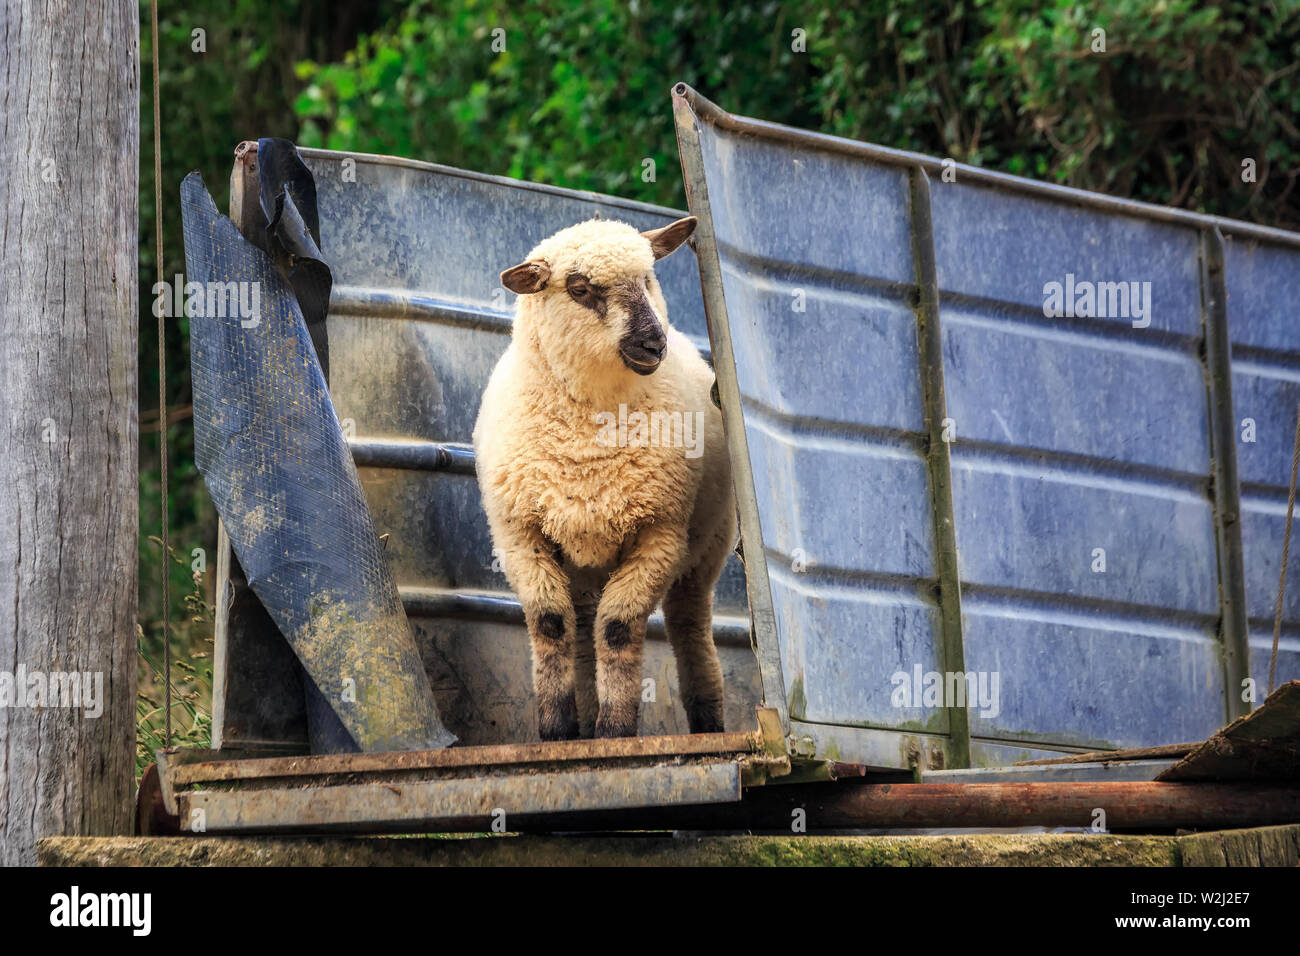 Sheep hiding in the iron tunnel in the Southern Scenic Route, New Zealand. - Stock Image